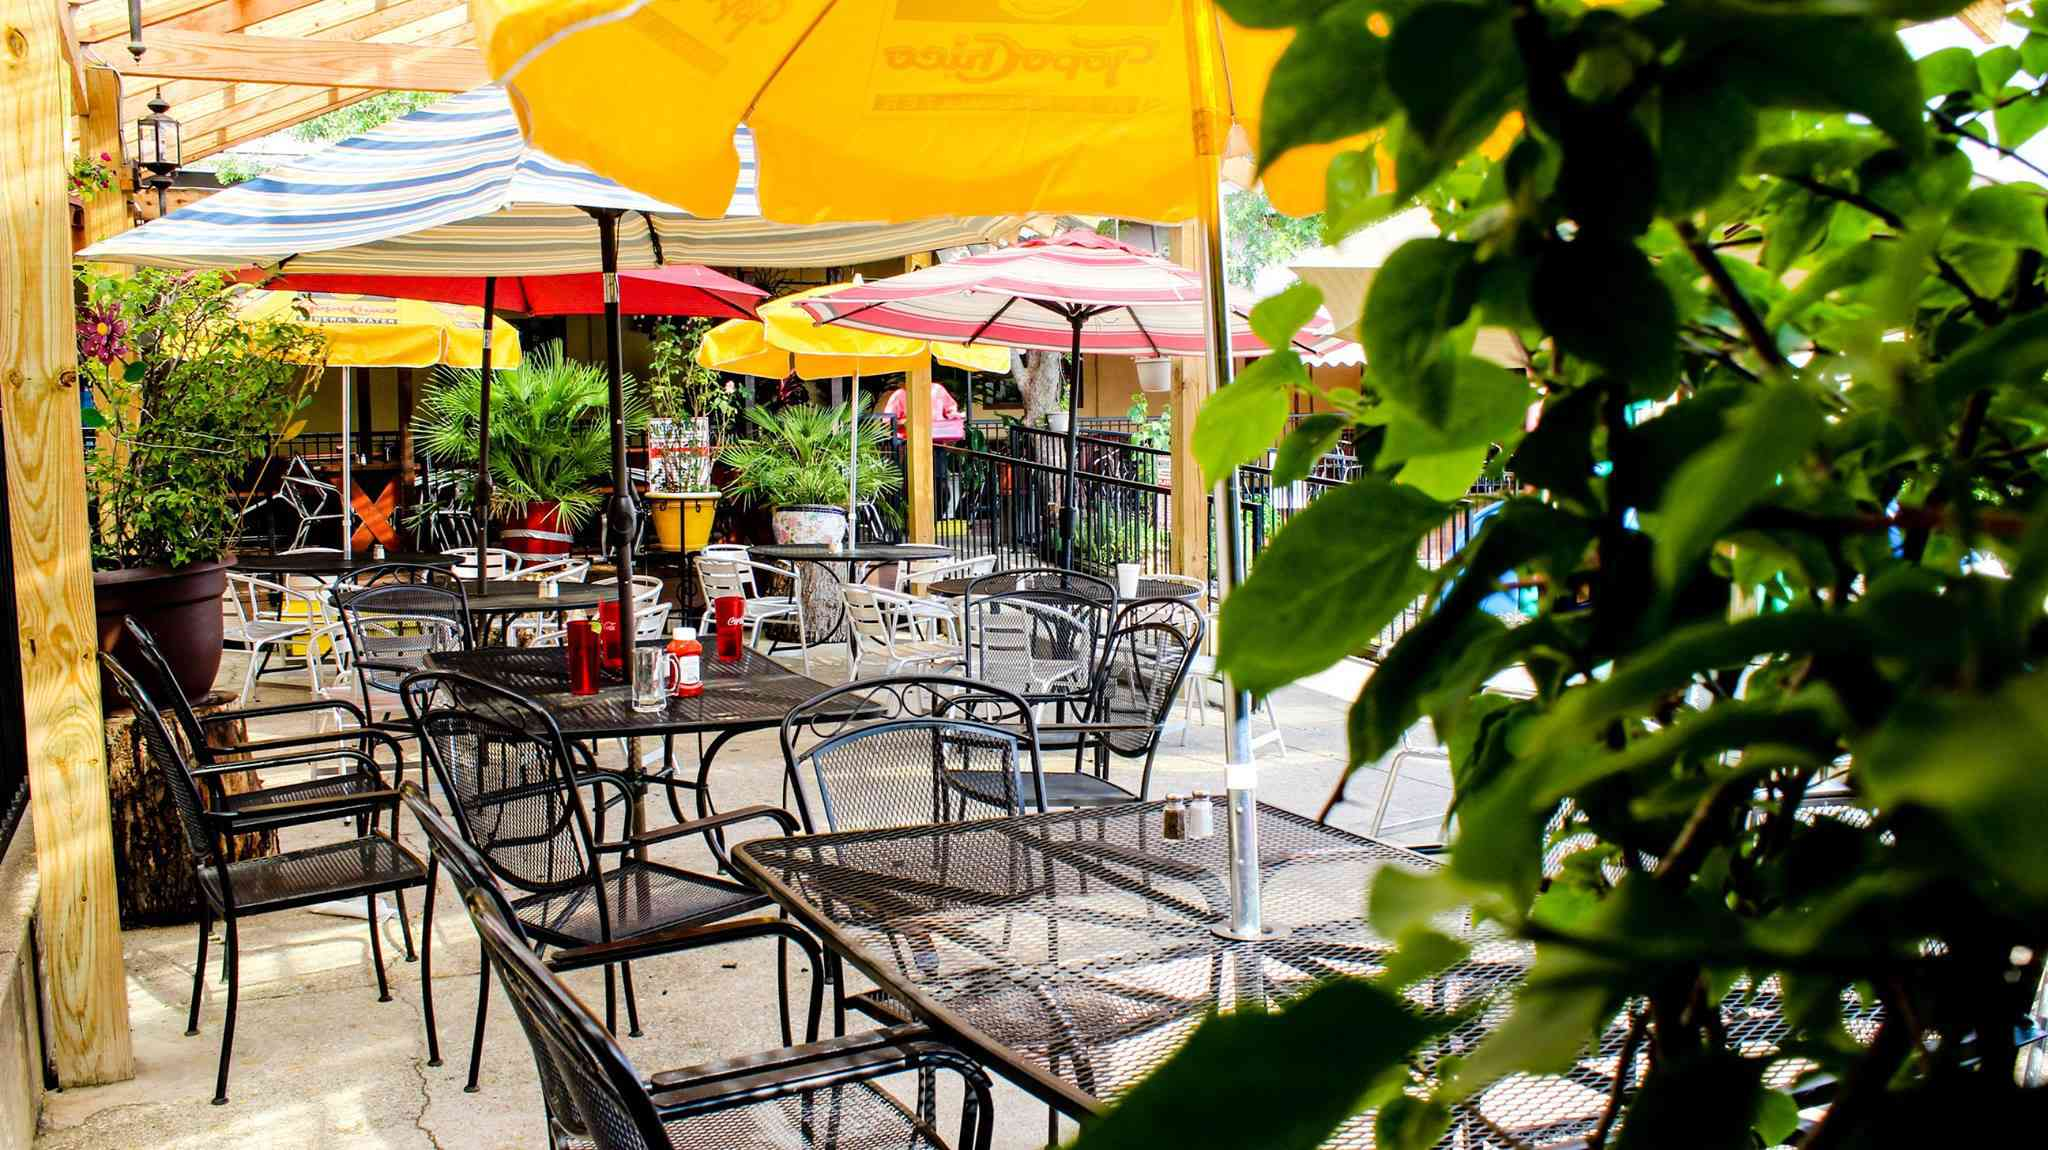 Outdoor metal chairs and tables with umbrellas with a plant covering the left third of the image